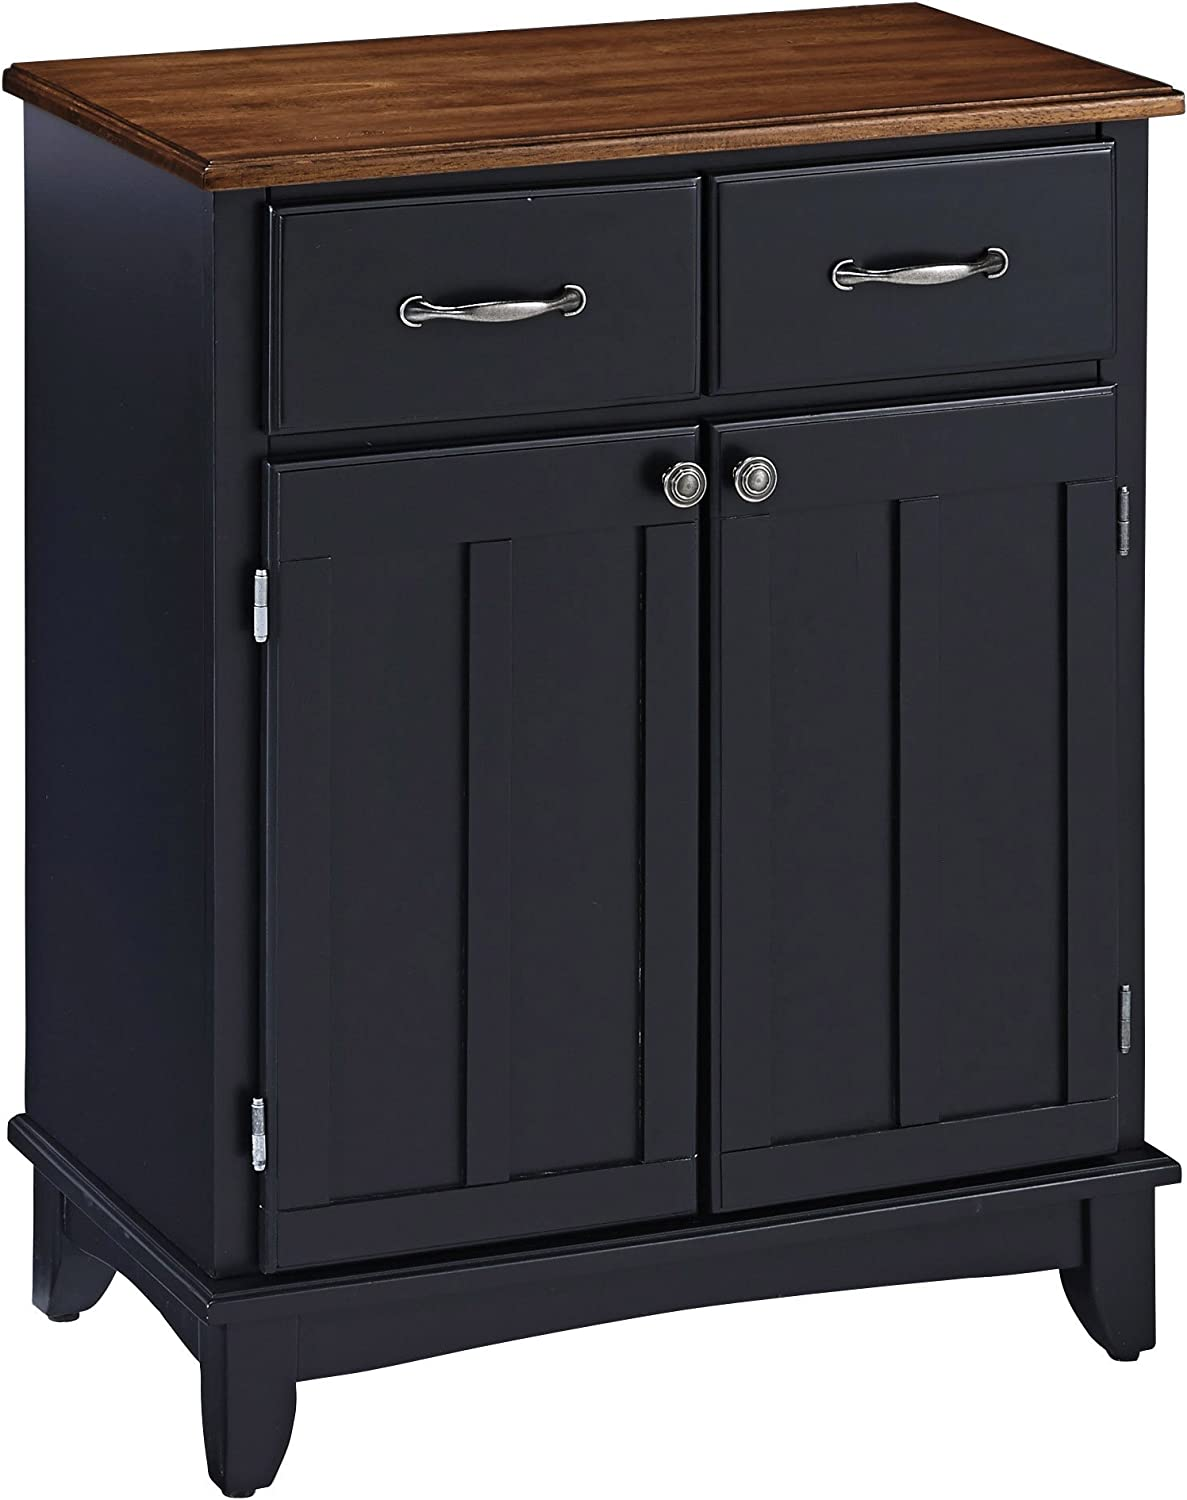 Buffet of Buffets Black with Cottage Wood Top by Home Styles